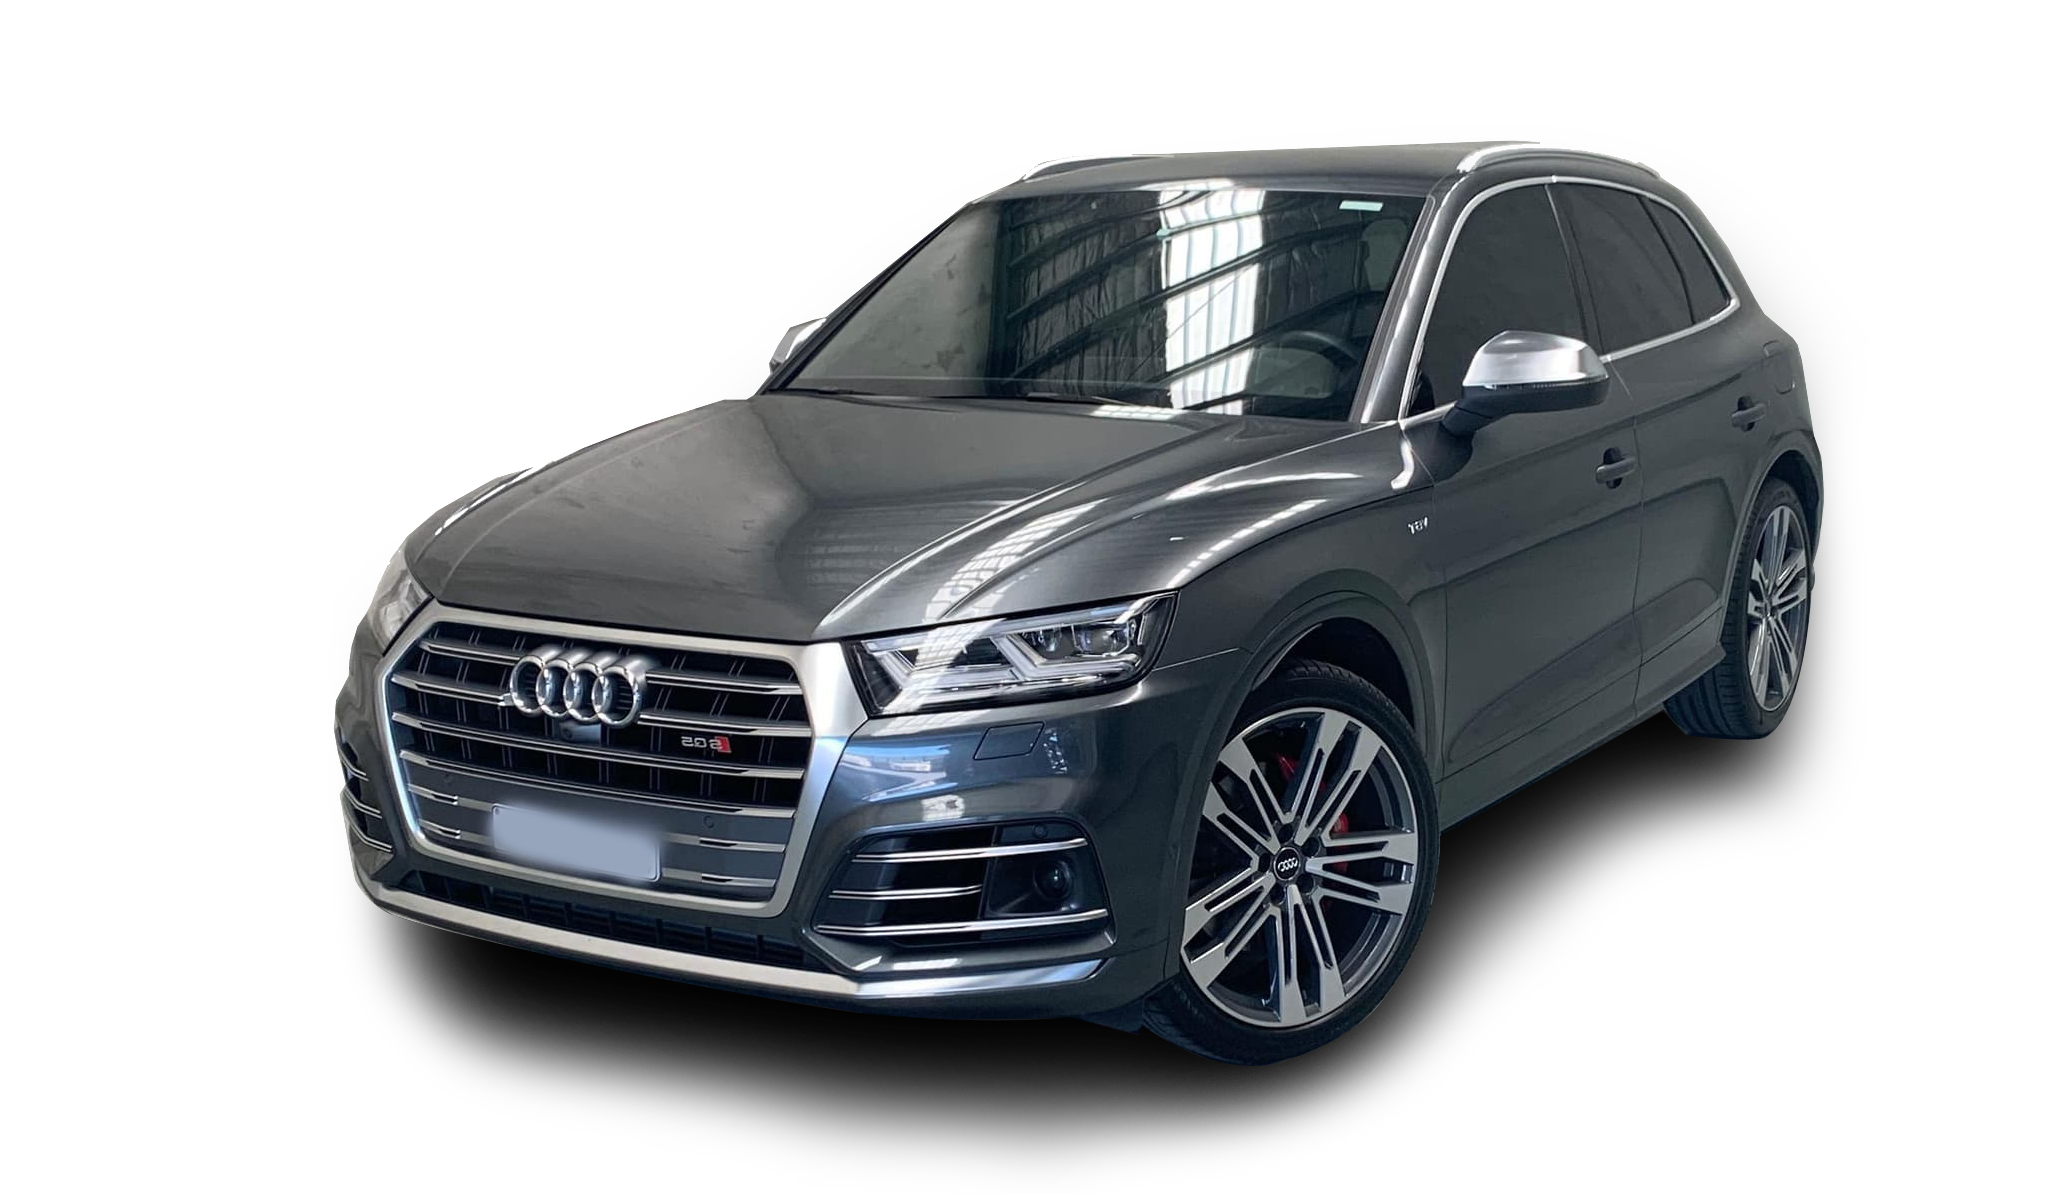 2018 Audi used car for sale car broker sydney